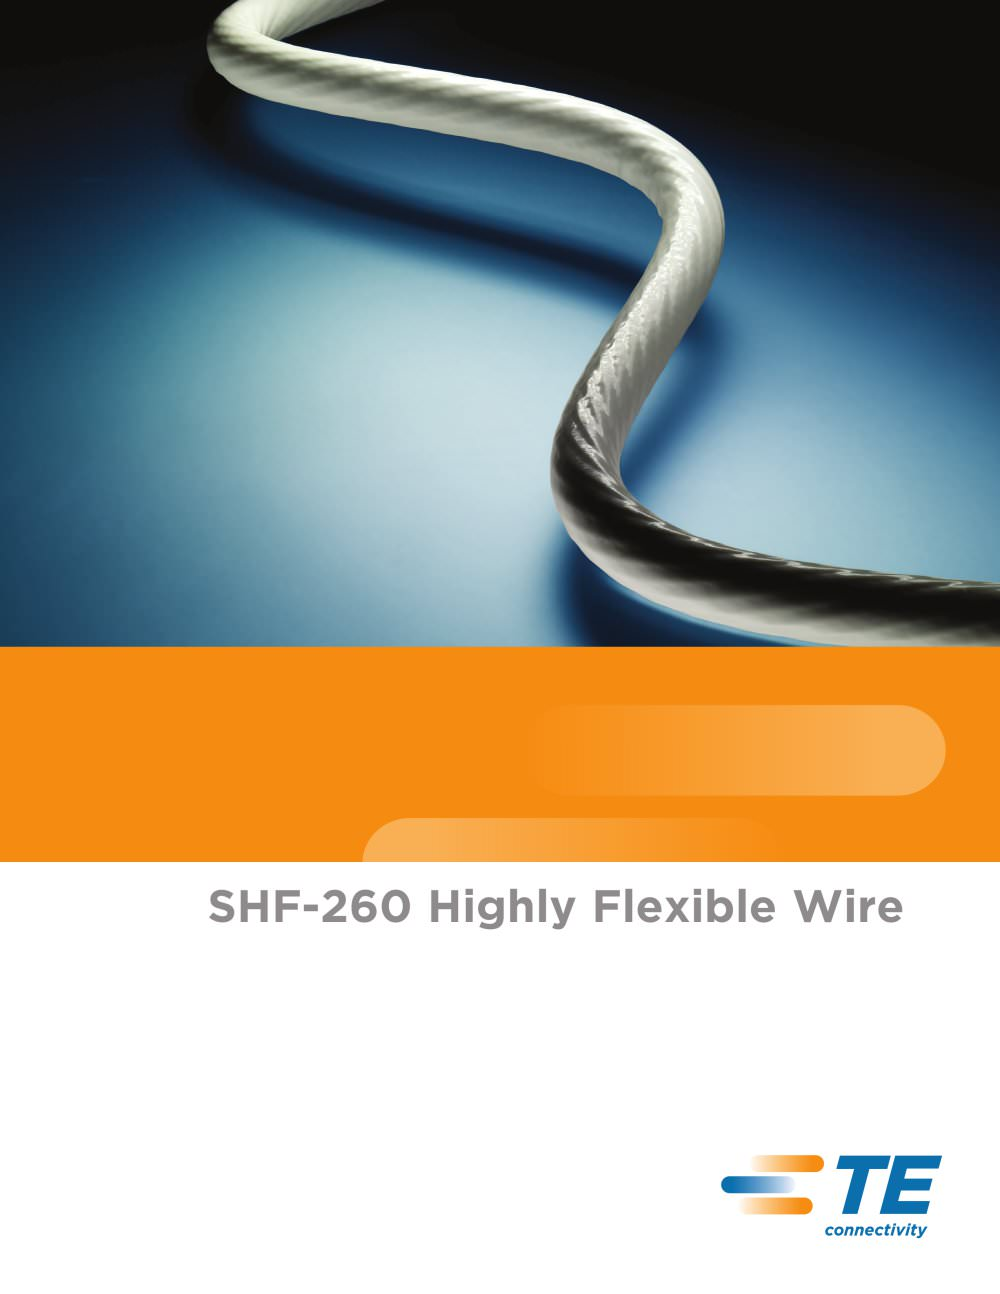 SHF-260 Highly Flexible Wire - TE Connectivity - Magnet Wire - PDF ...